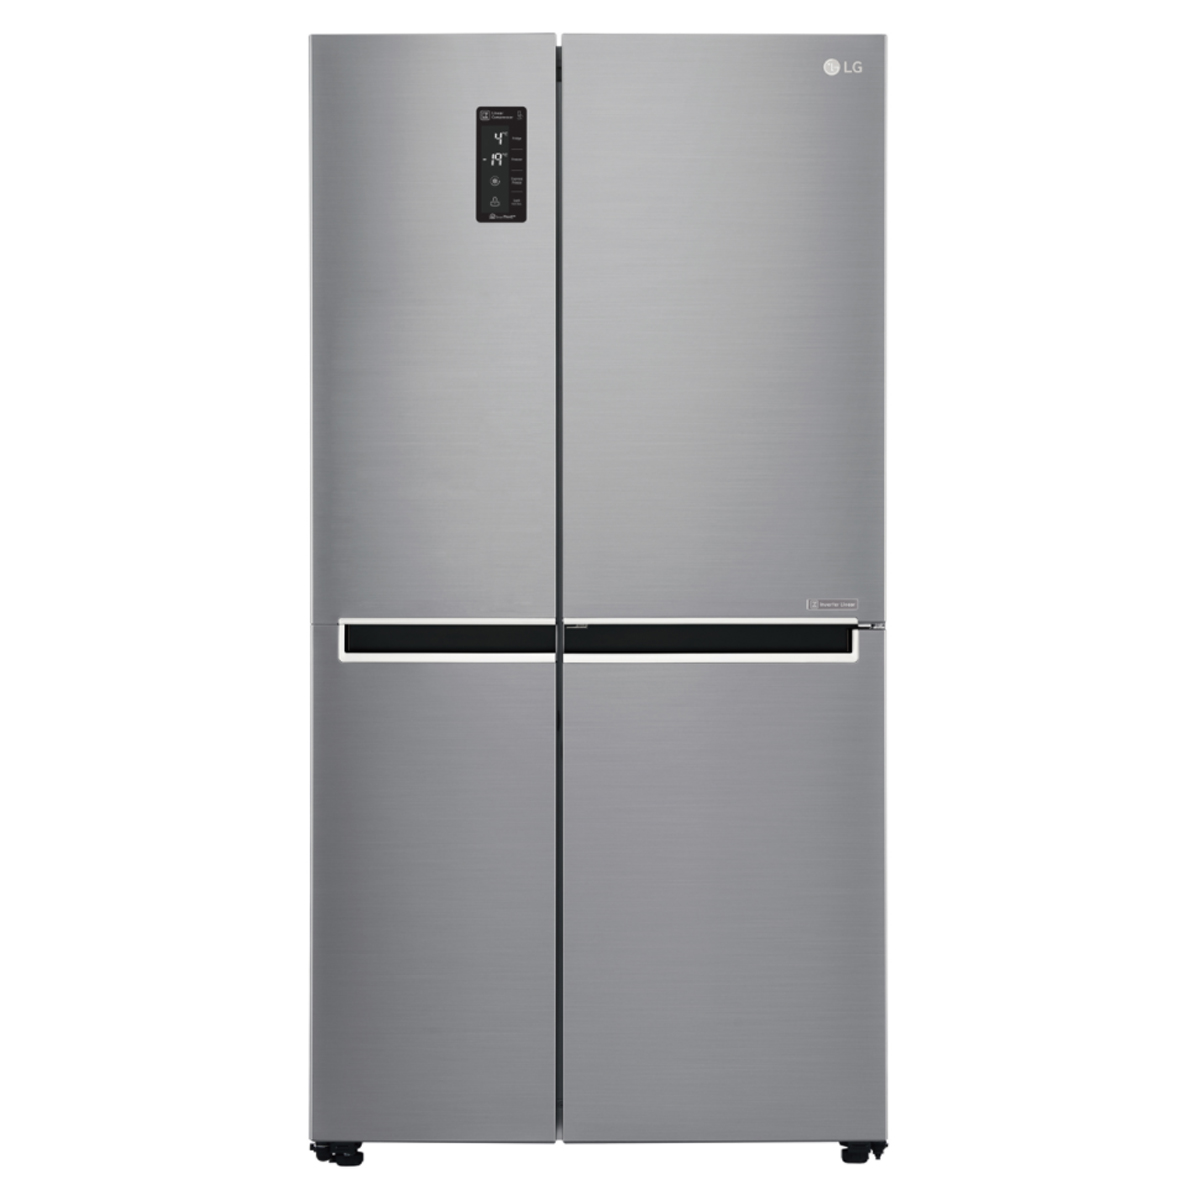 LG GS-B680PL 687L Side by Side Fridge